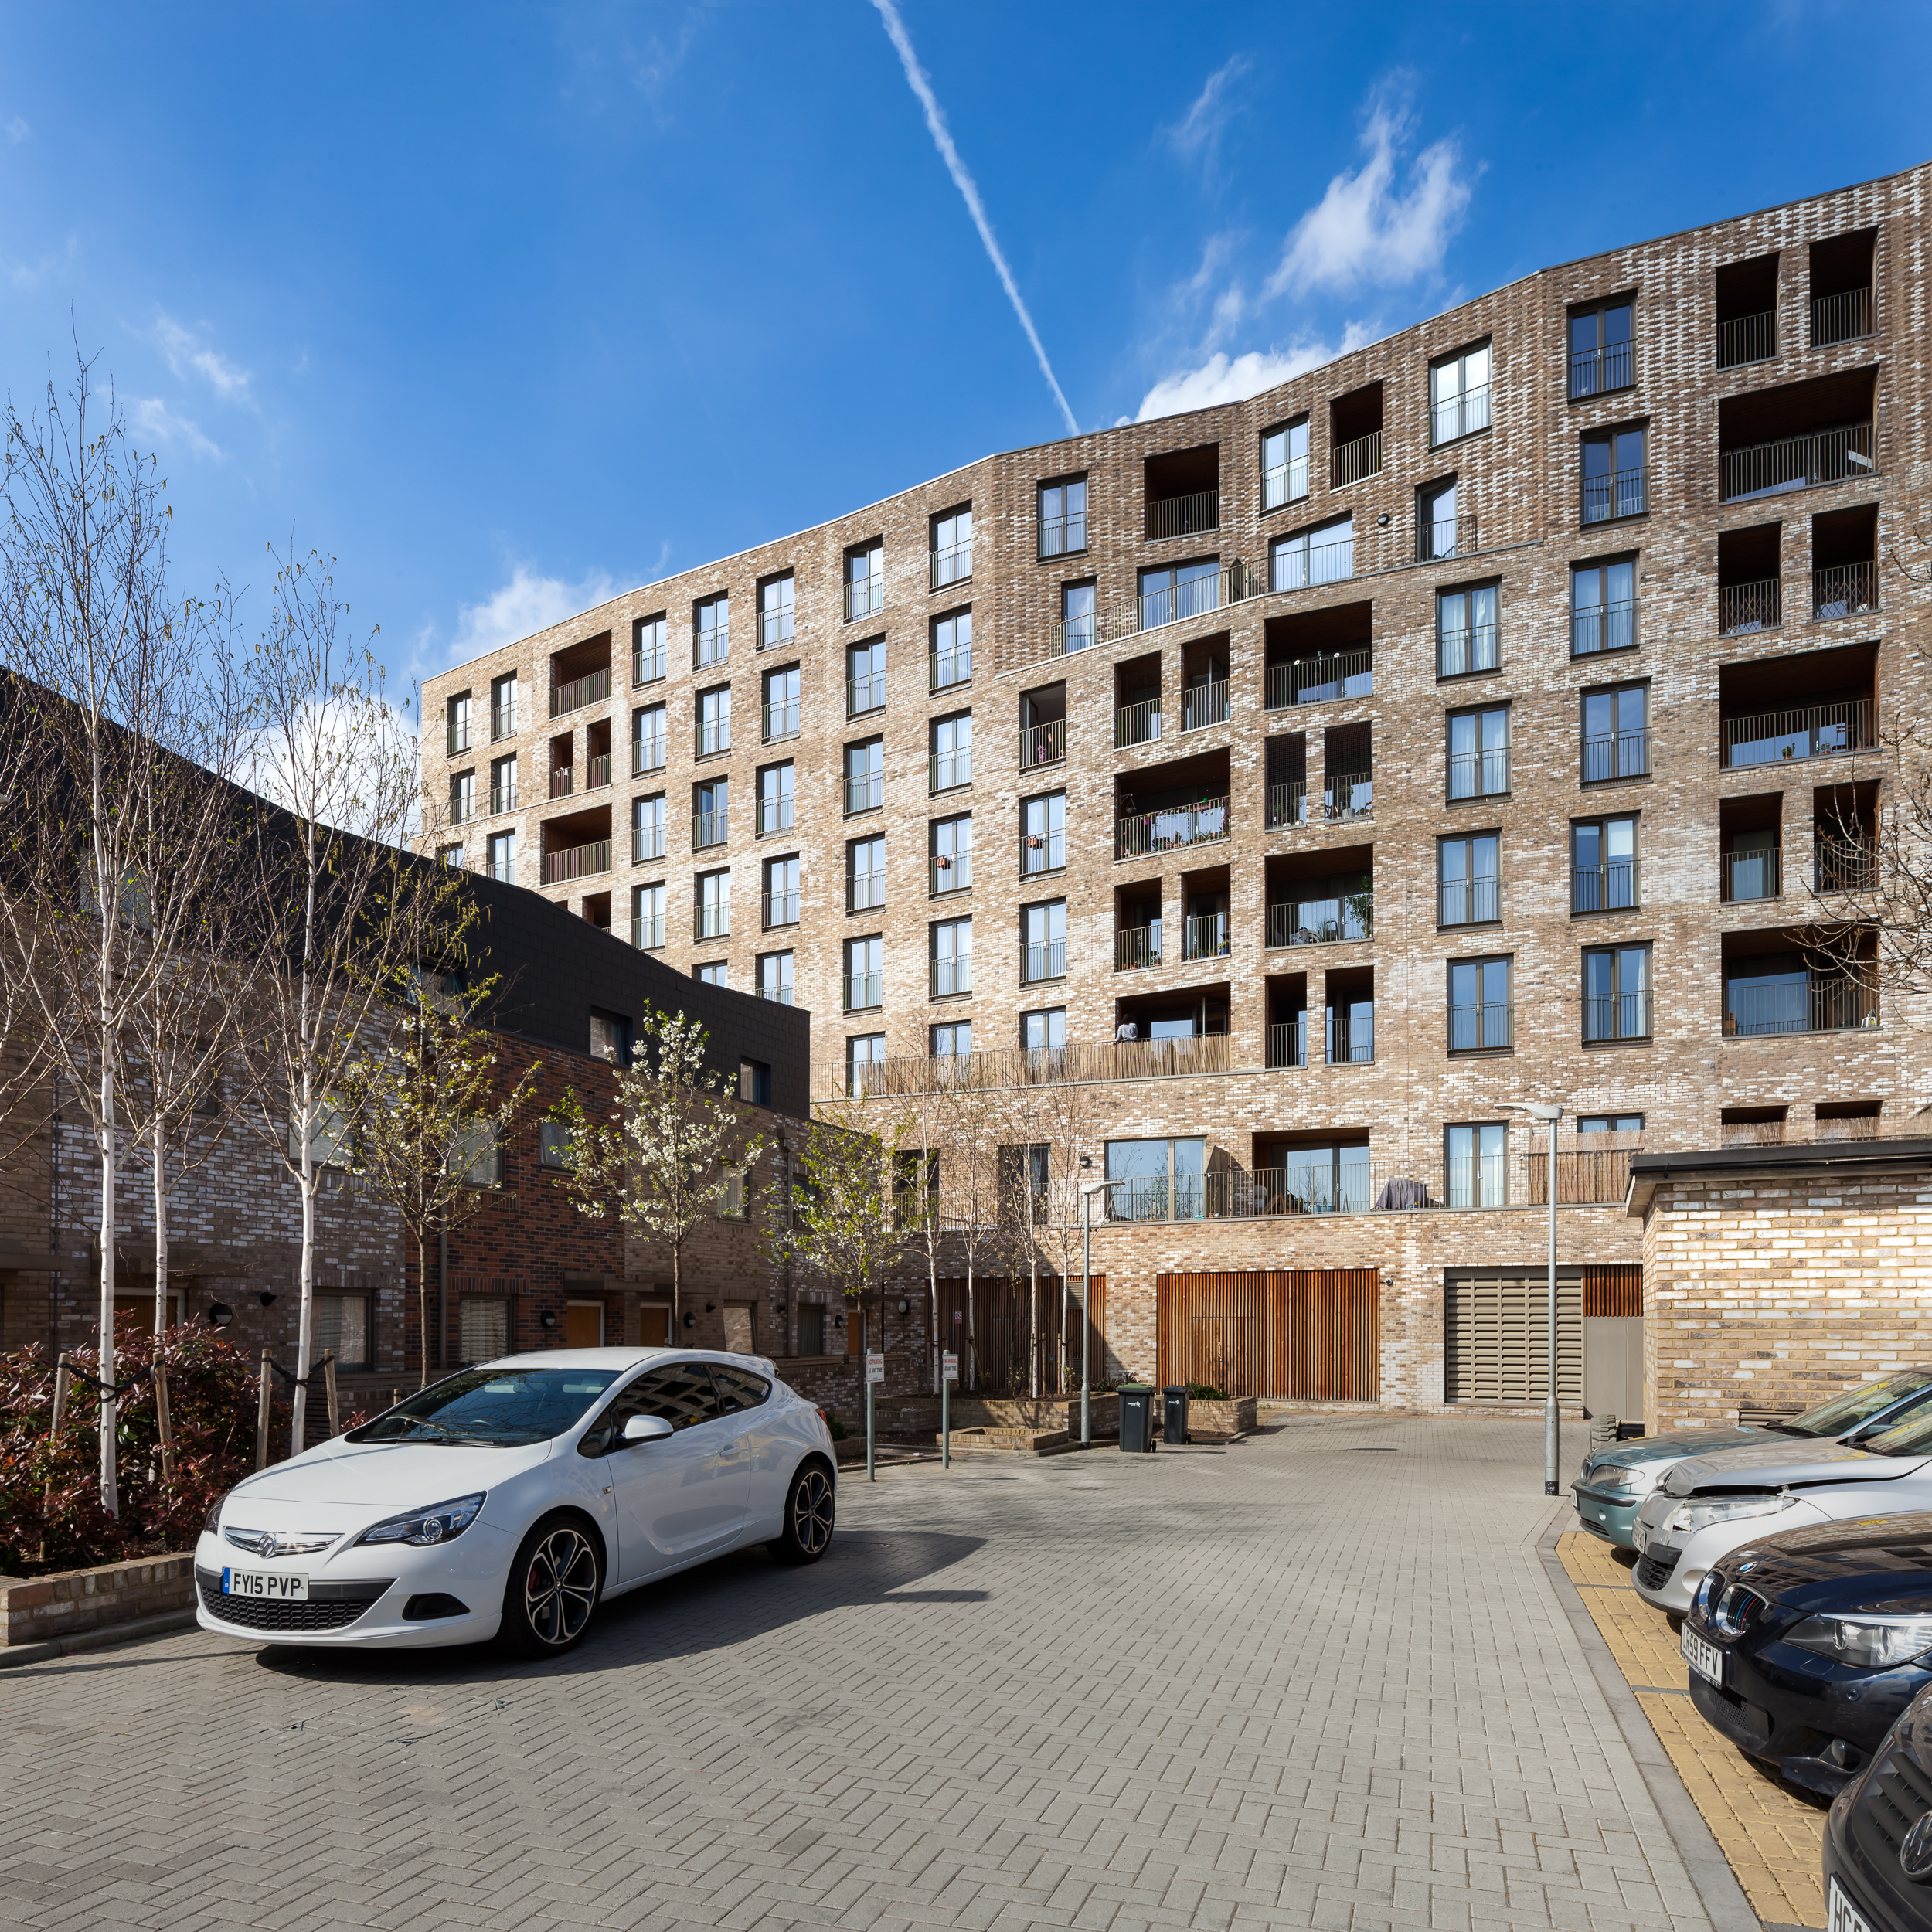 Pano_8339_8341-Edit - 050418_Hawkins_Brown_Tottenham - Website.jpg